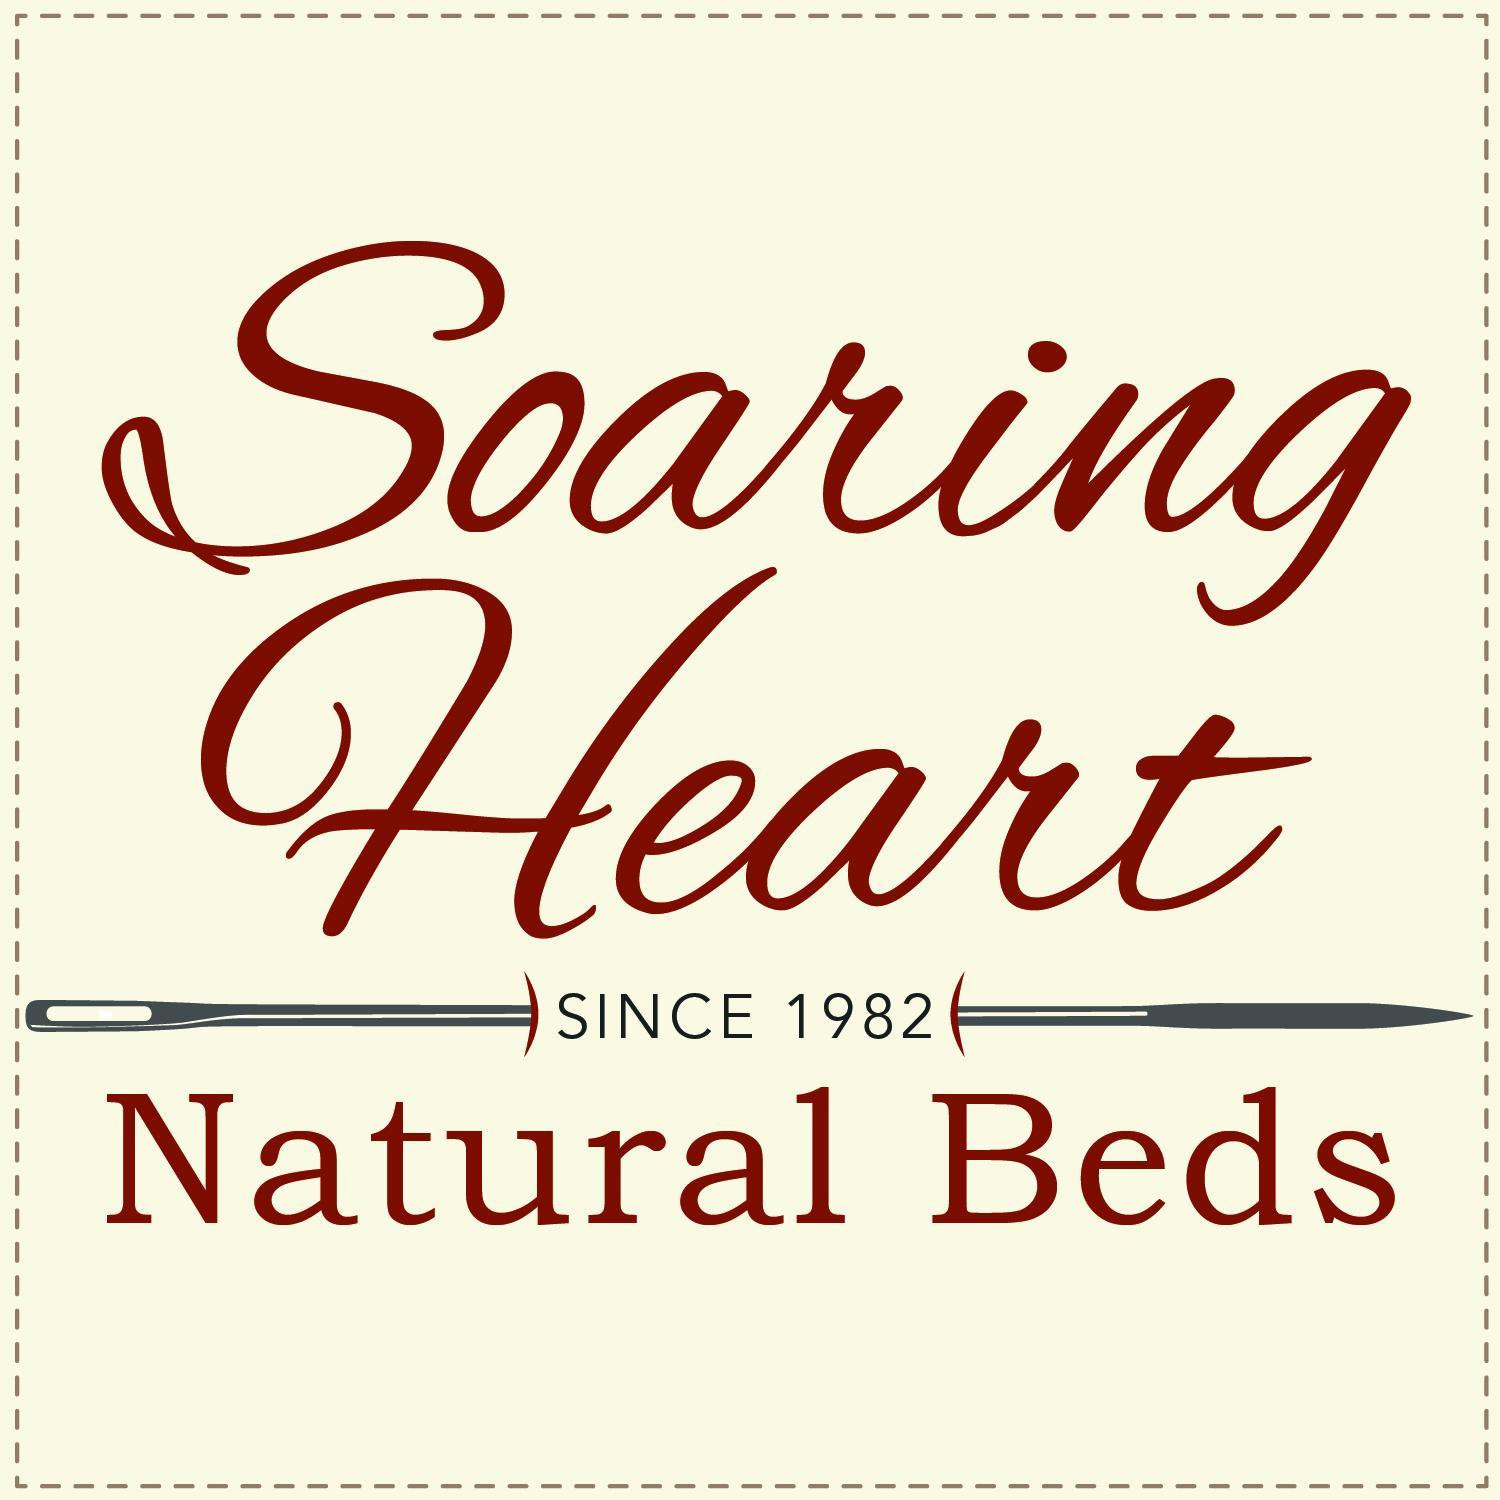 tulsa crib mattress favored cheap box review air dreadful mattresses tufted design spring commercial tempurpedic of reviews soaring near kapolei size frightening latex daybed finesse amazing pad inch double lucidmattress me heart splendid contemporary search wow firm intriguing stunni and brilliant